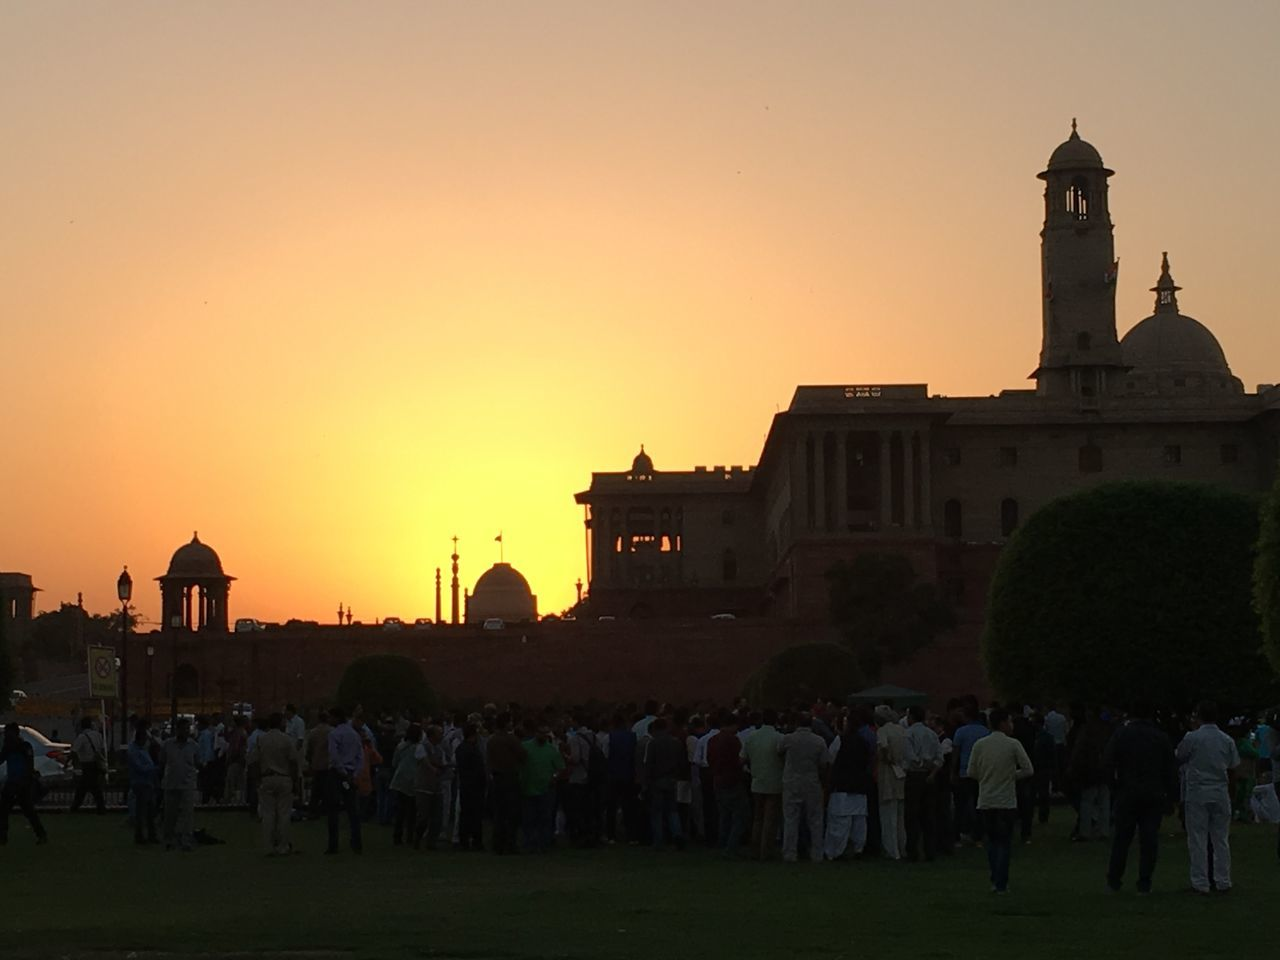 sunset, large group of people, architecture, building exterior, built structure, sky, real people, travel destinations, clear sky, men, spirituality, outdoors, crowd, nature, city, day, people